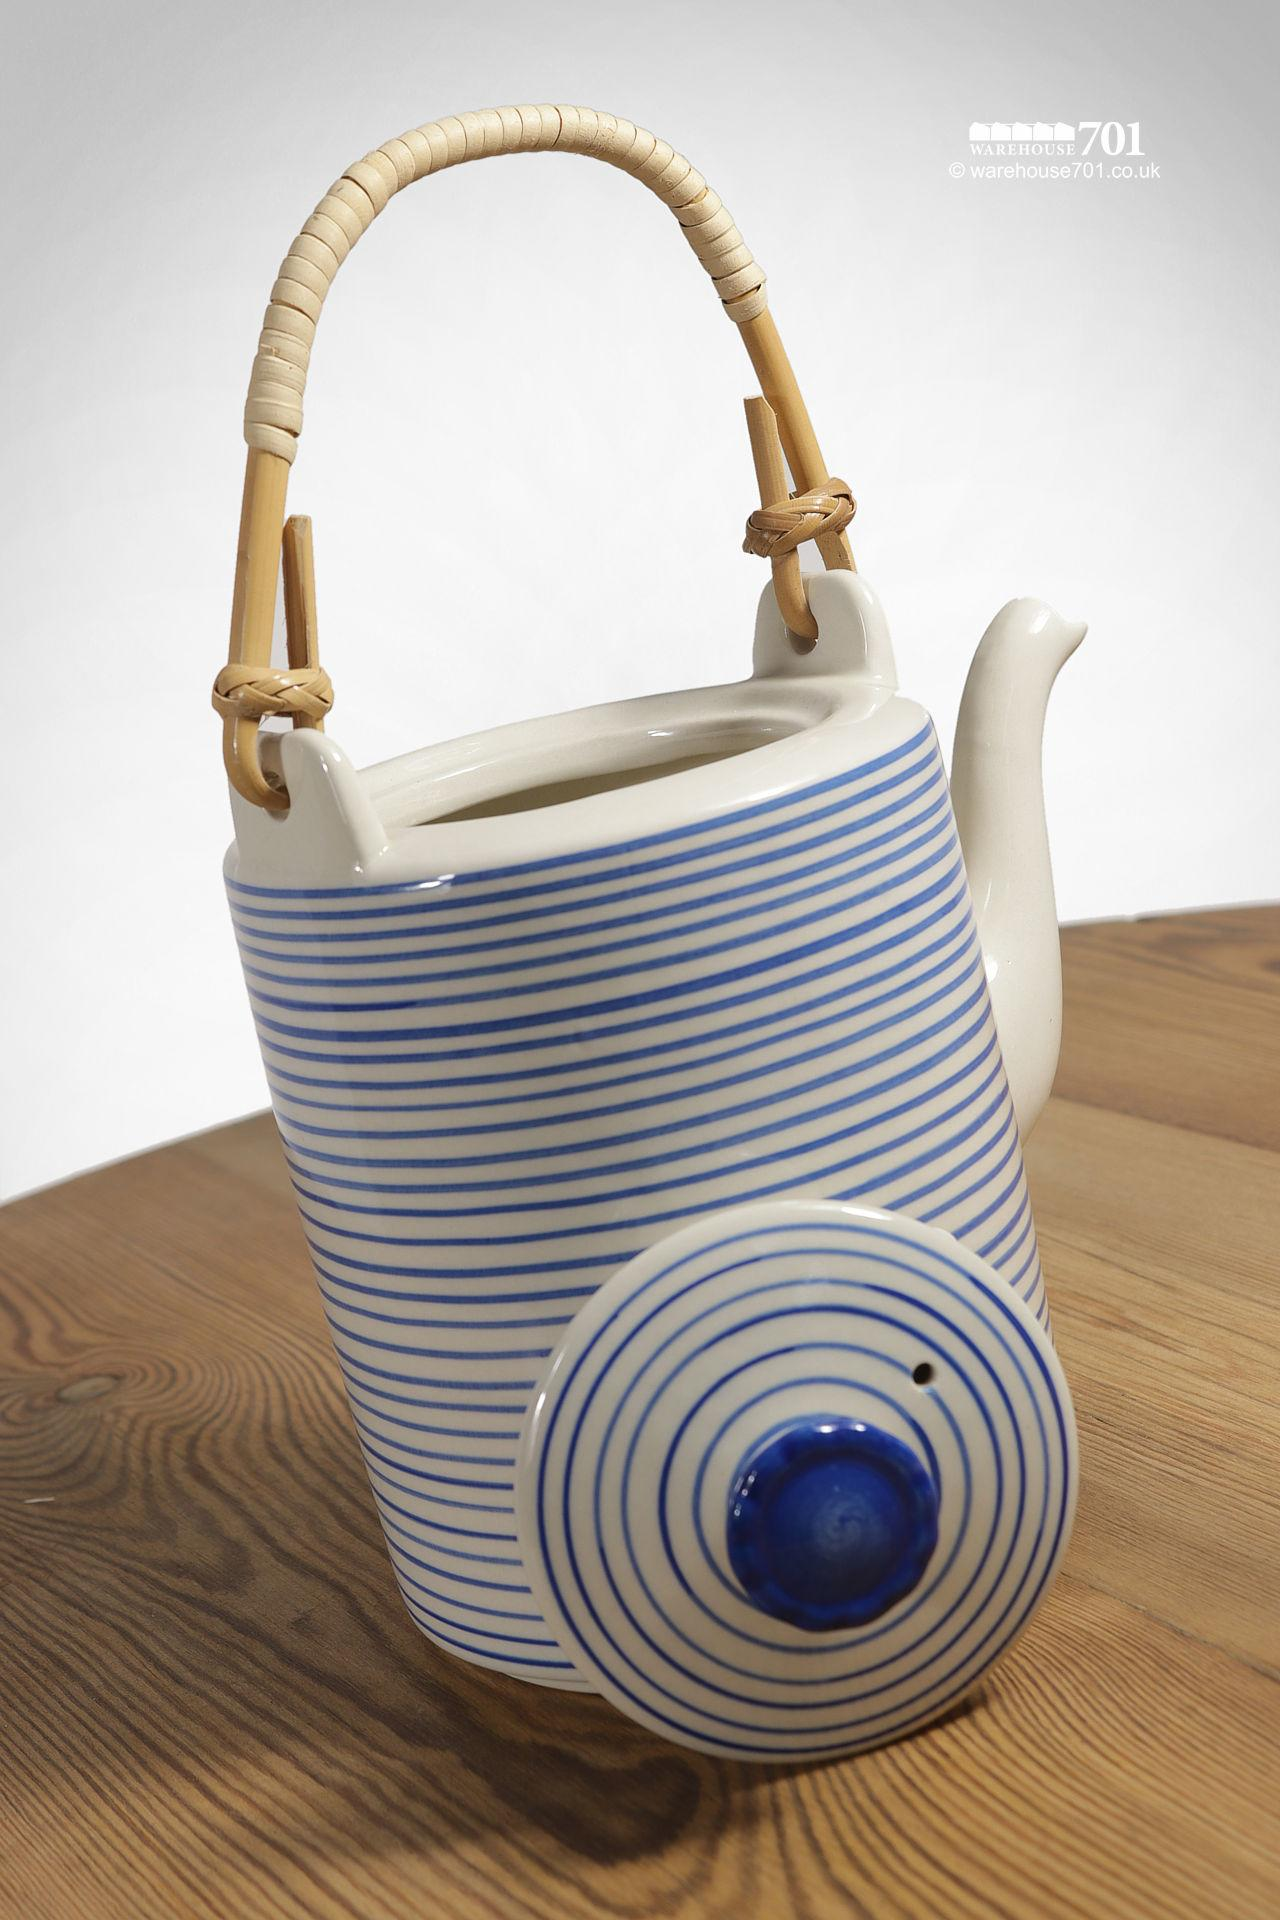 Blue and White Banded Ceramic Teapot with a Woven Bamboo Handle #2